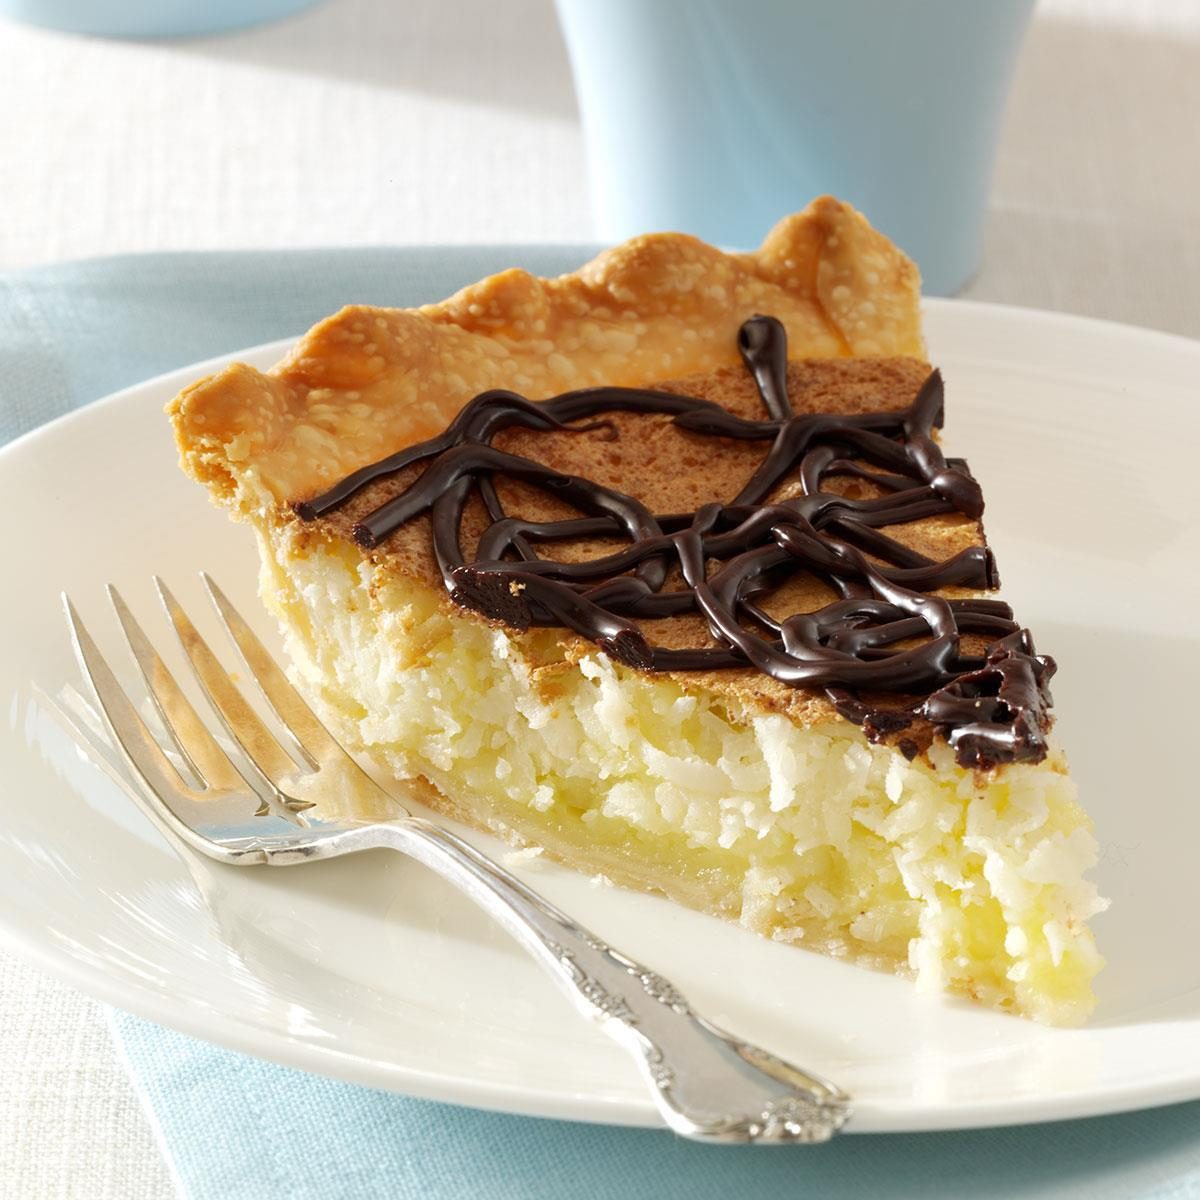 Coconut Macaroon Pie With Chocolate Ganache Exps88862 Thcb2302822a01 12 9b Rms 4